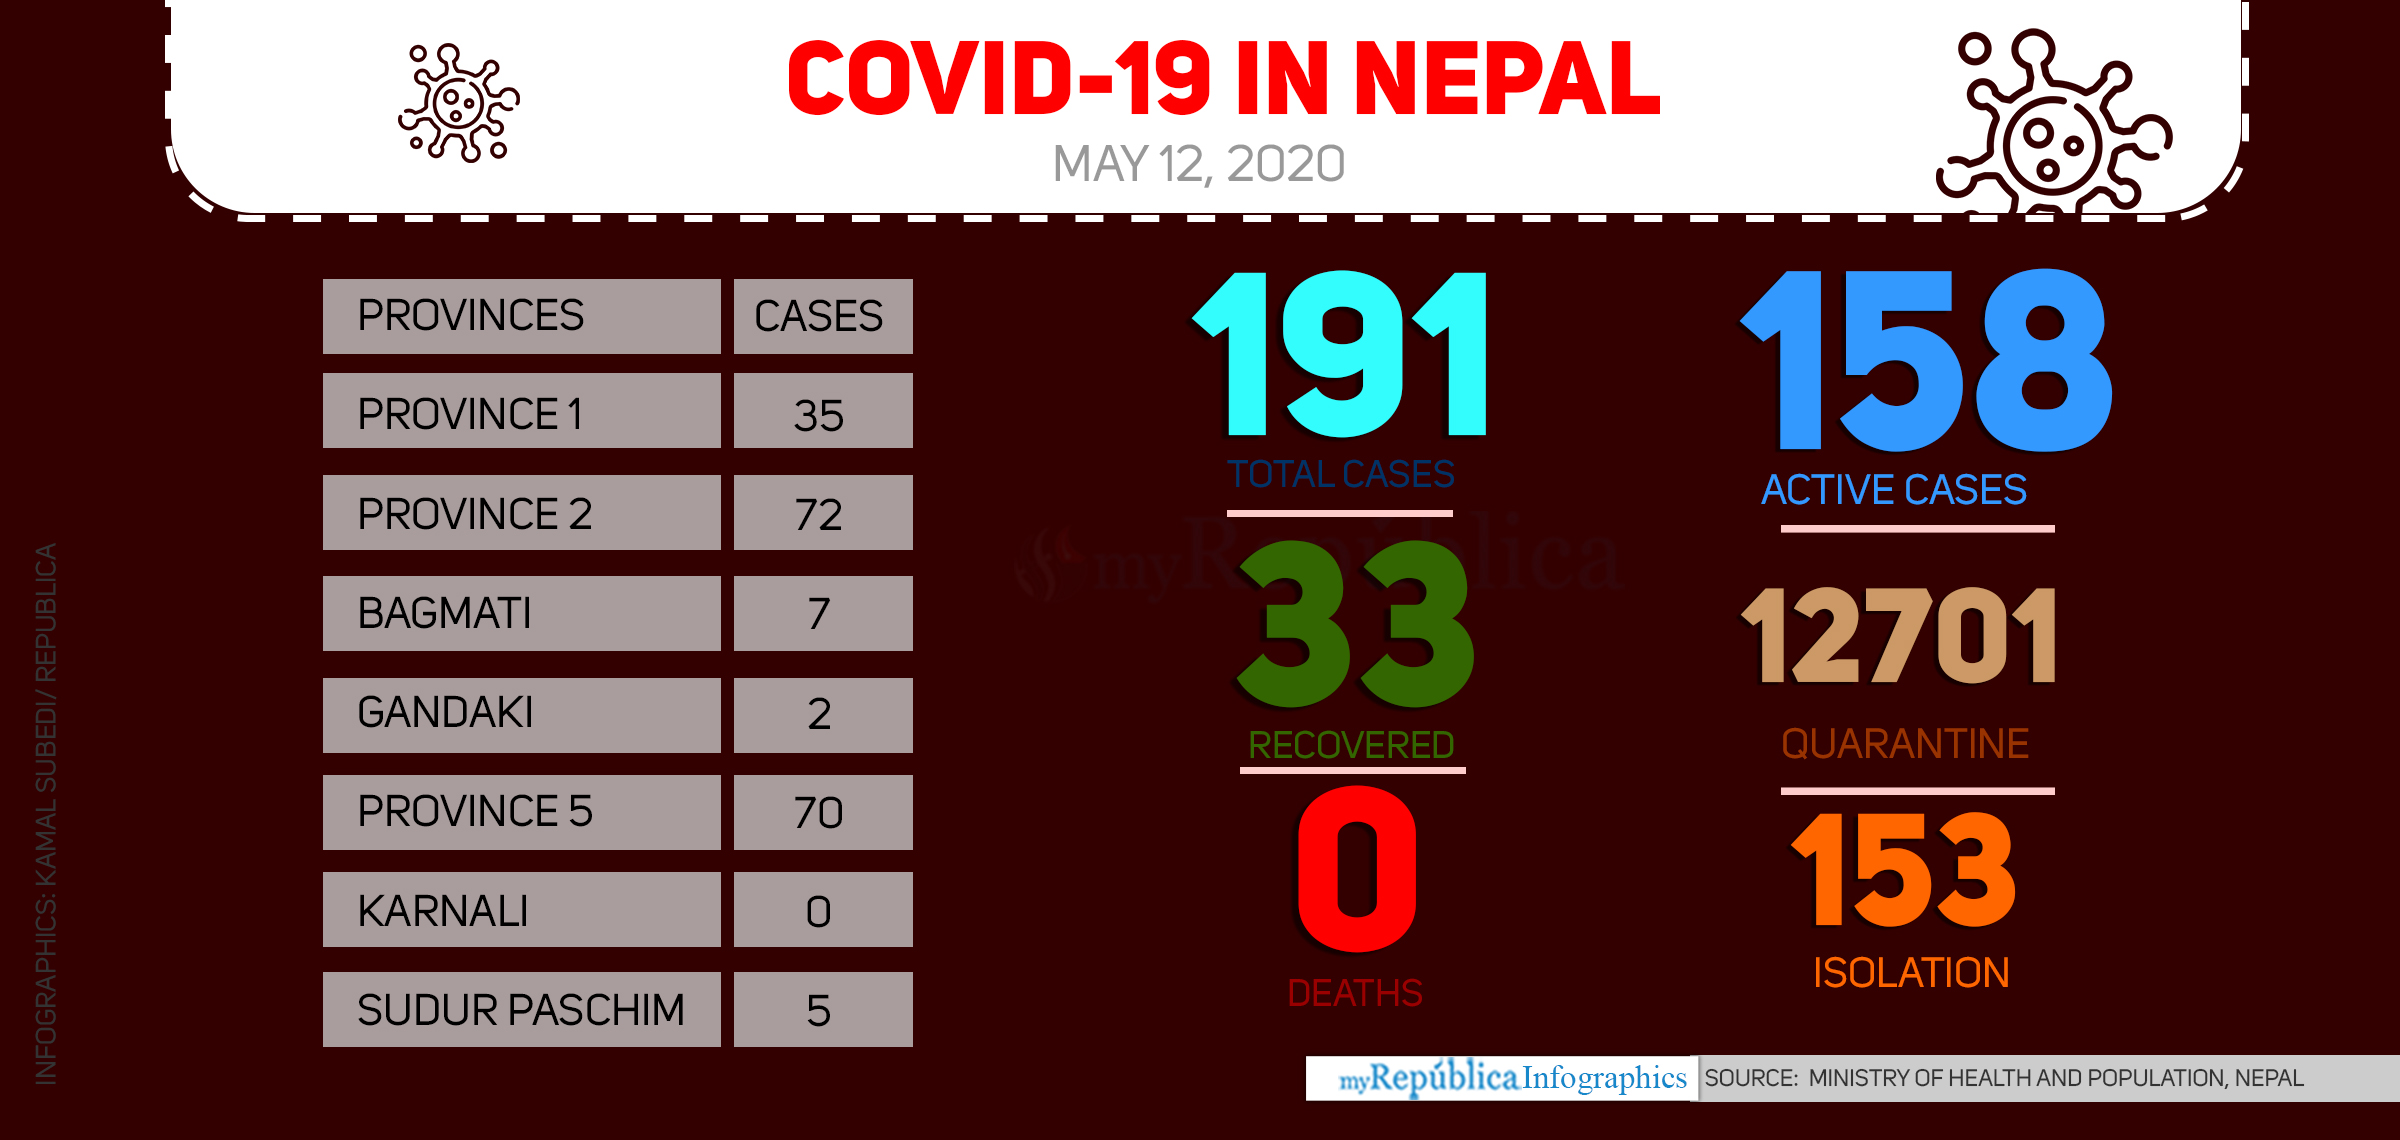 Nepal's COVID-19 tally spikes to 191 as 57 new cases confirmed today